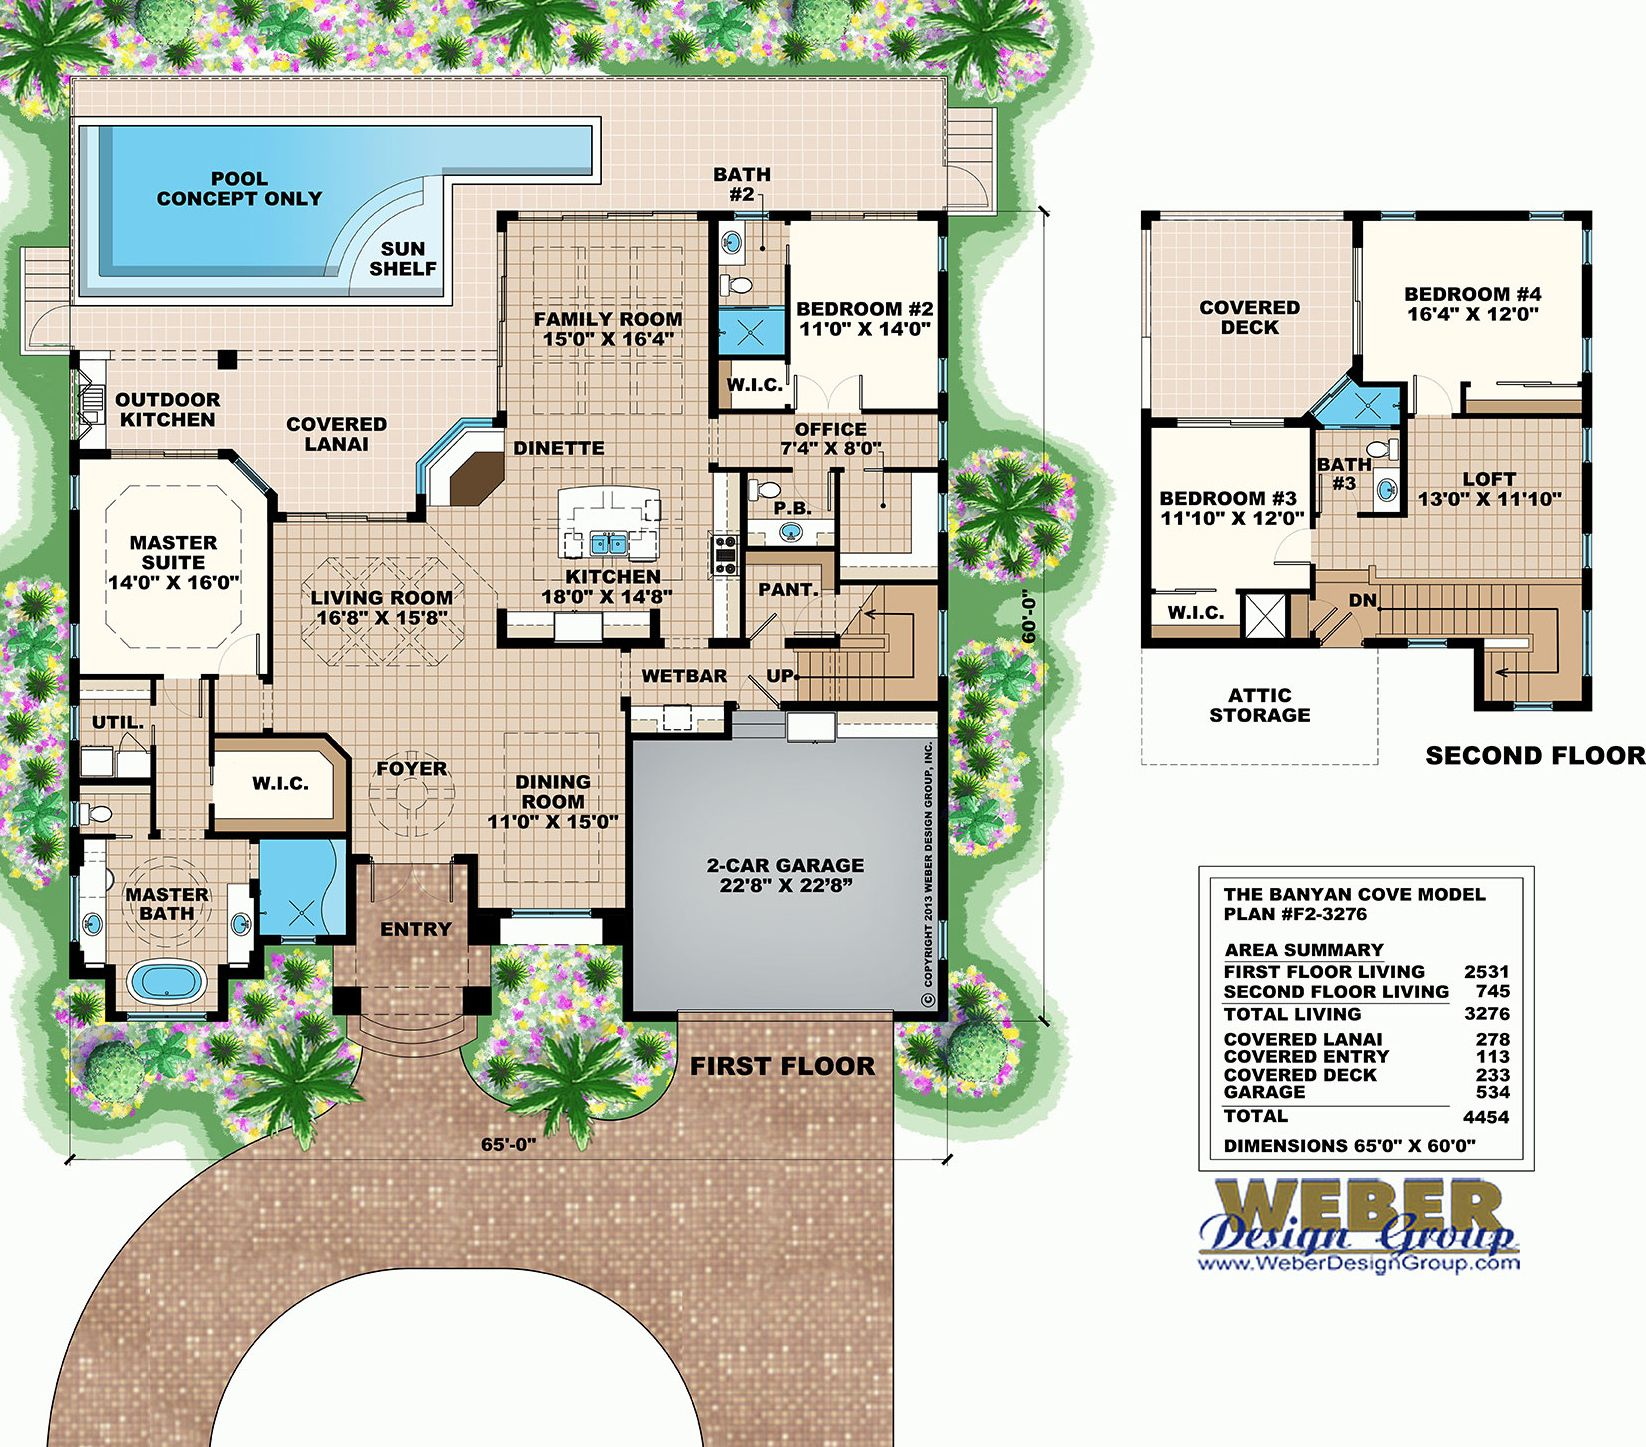 Mediterranean House Plan 2 Story Modern Beach Home Floor Plan Mediterranean House Plan Beach House Plans House Plans With Photos